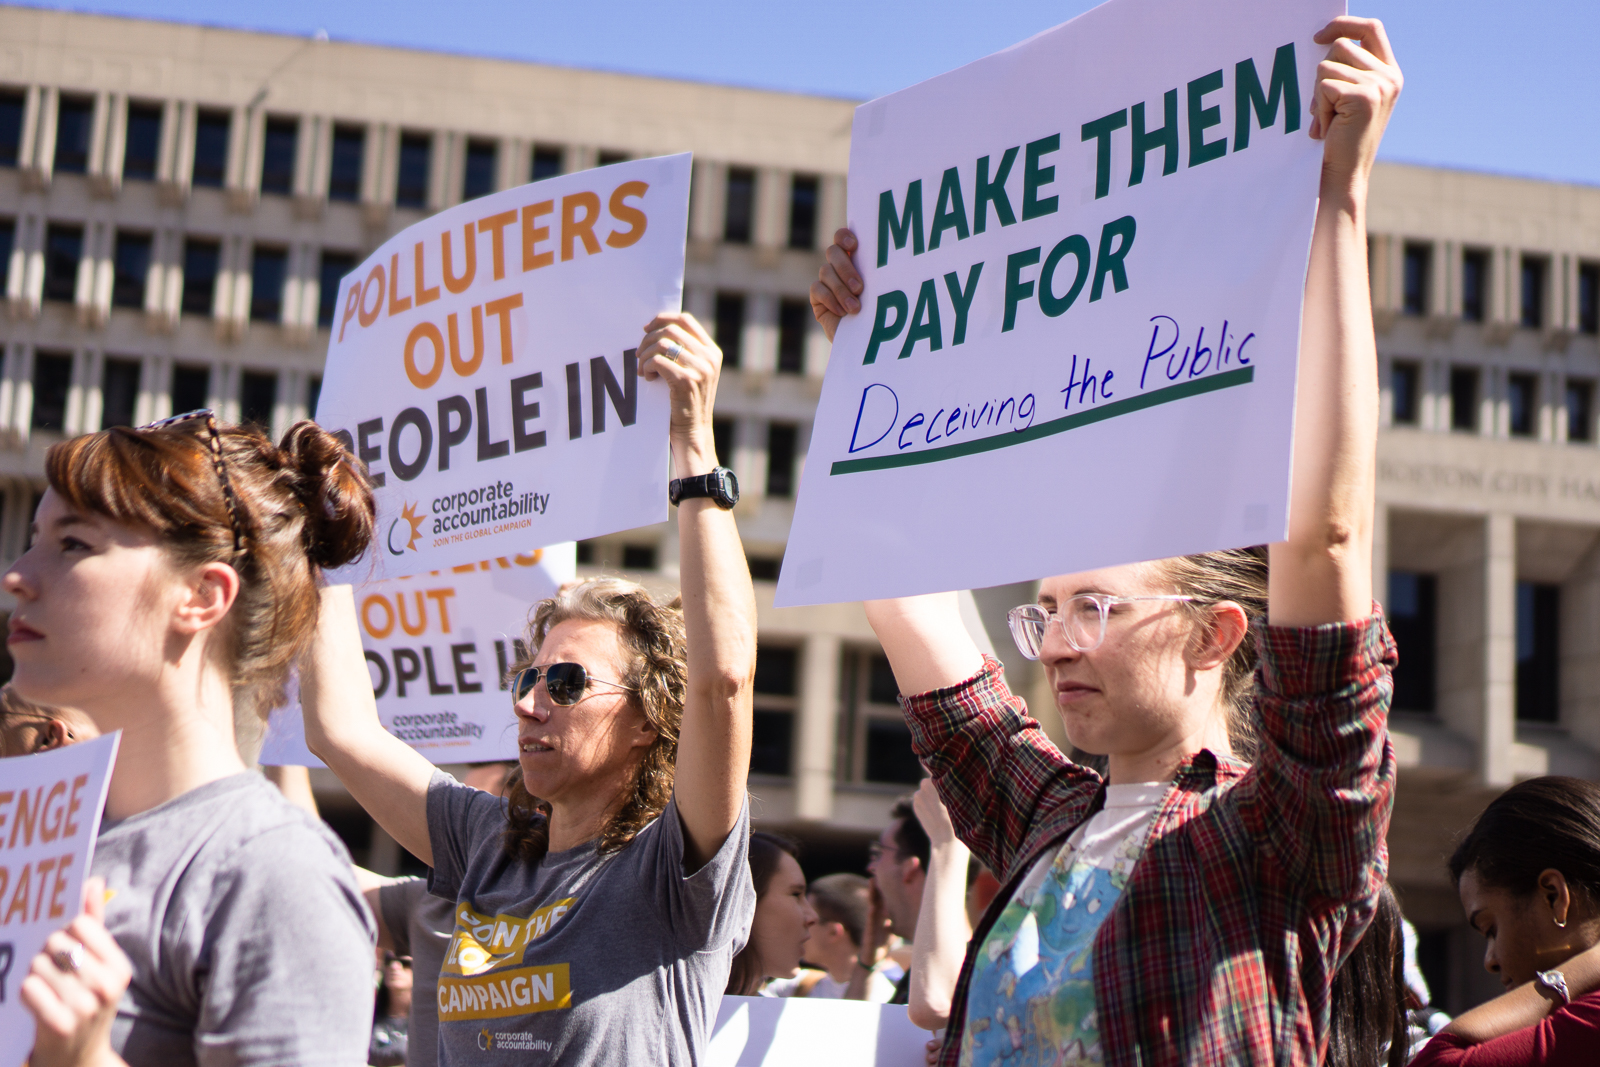 """Two people at a climate protest holding signs: """"Polluters Out, People In"""" and """"Make them pay for deceiving the public."""""""